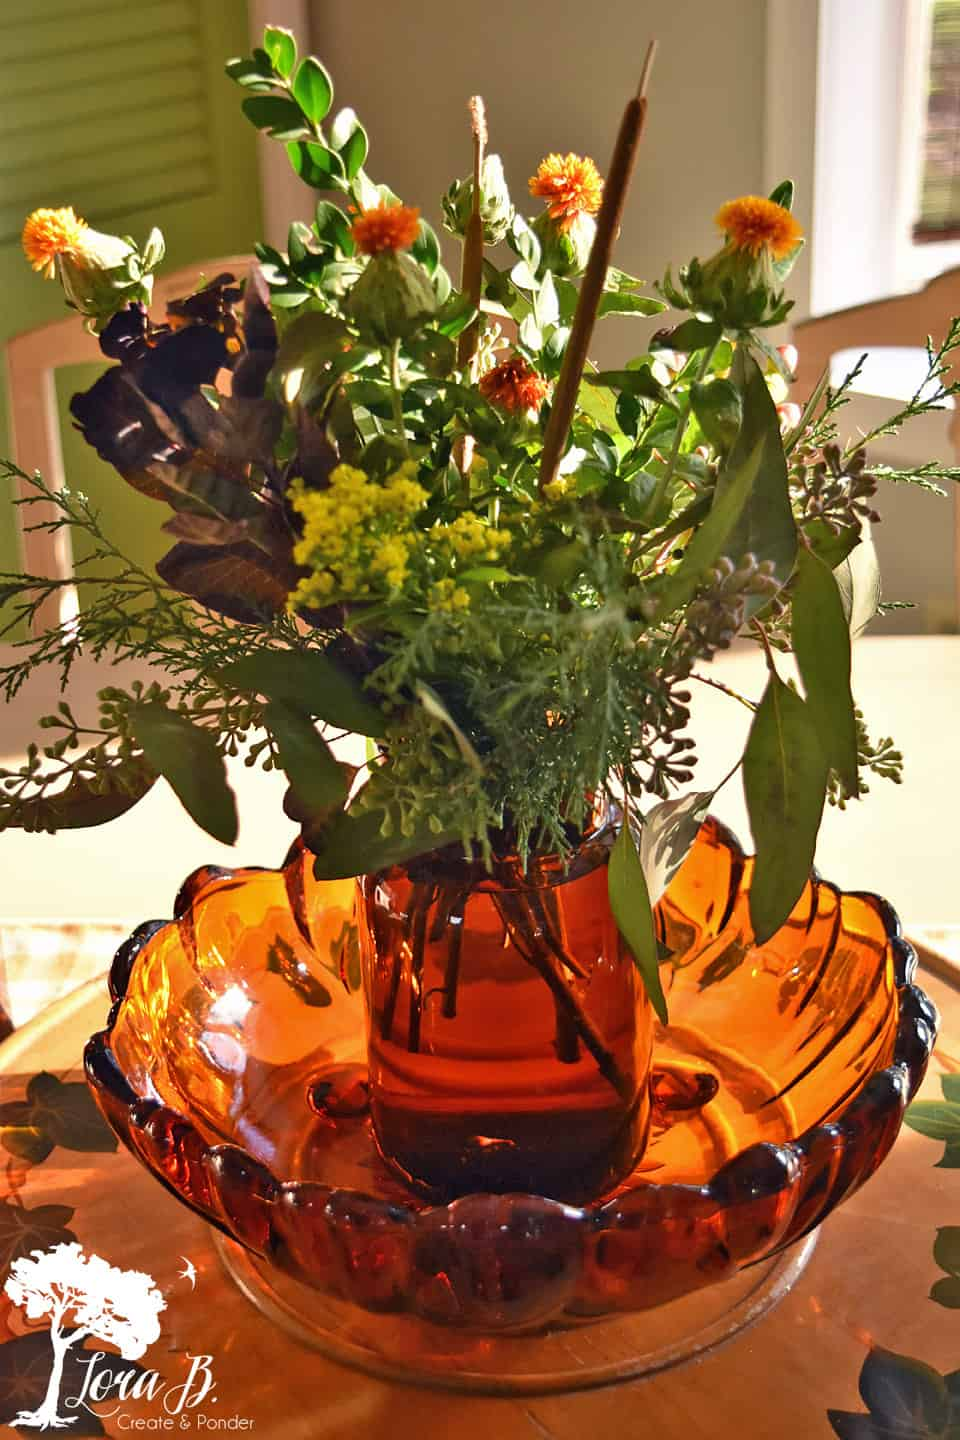 Store bought flower bouquet arranged in brown glass container.